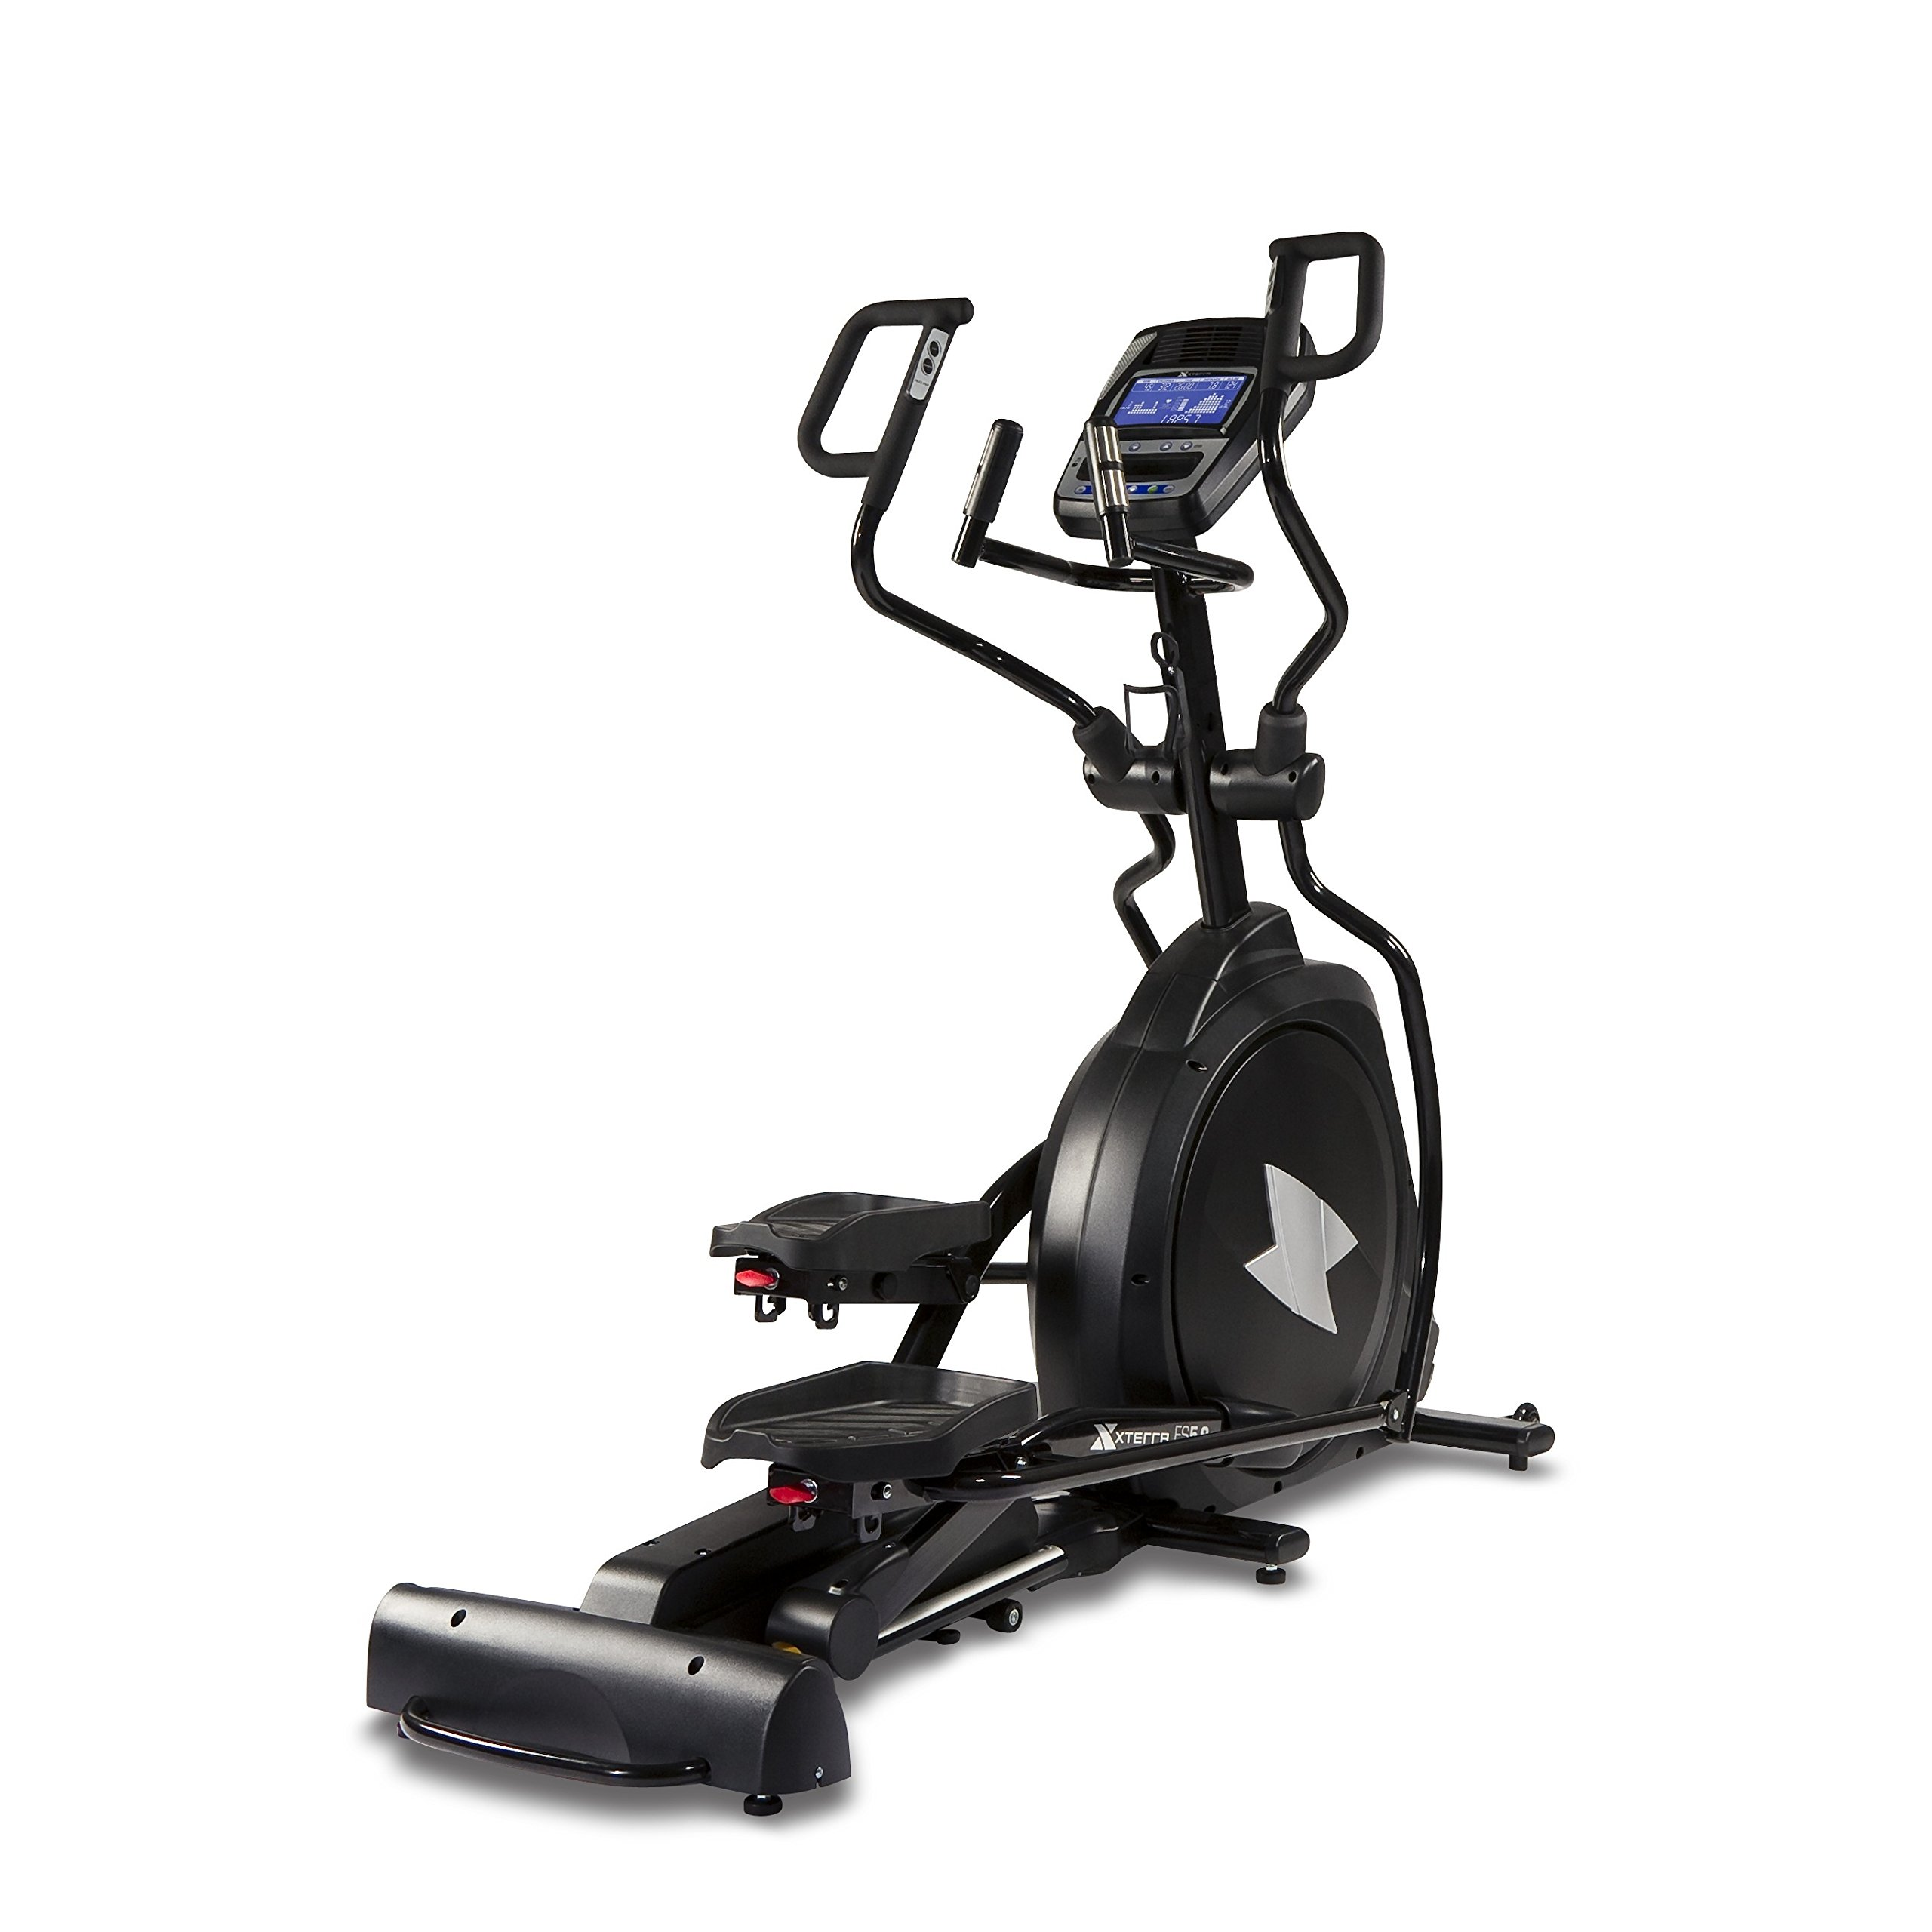 XTERRA Fitness FS5.9e Elliptical Trainer by Xterra Fitness